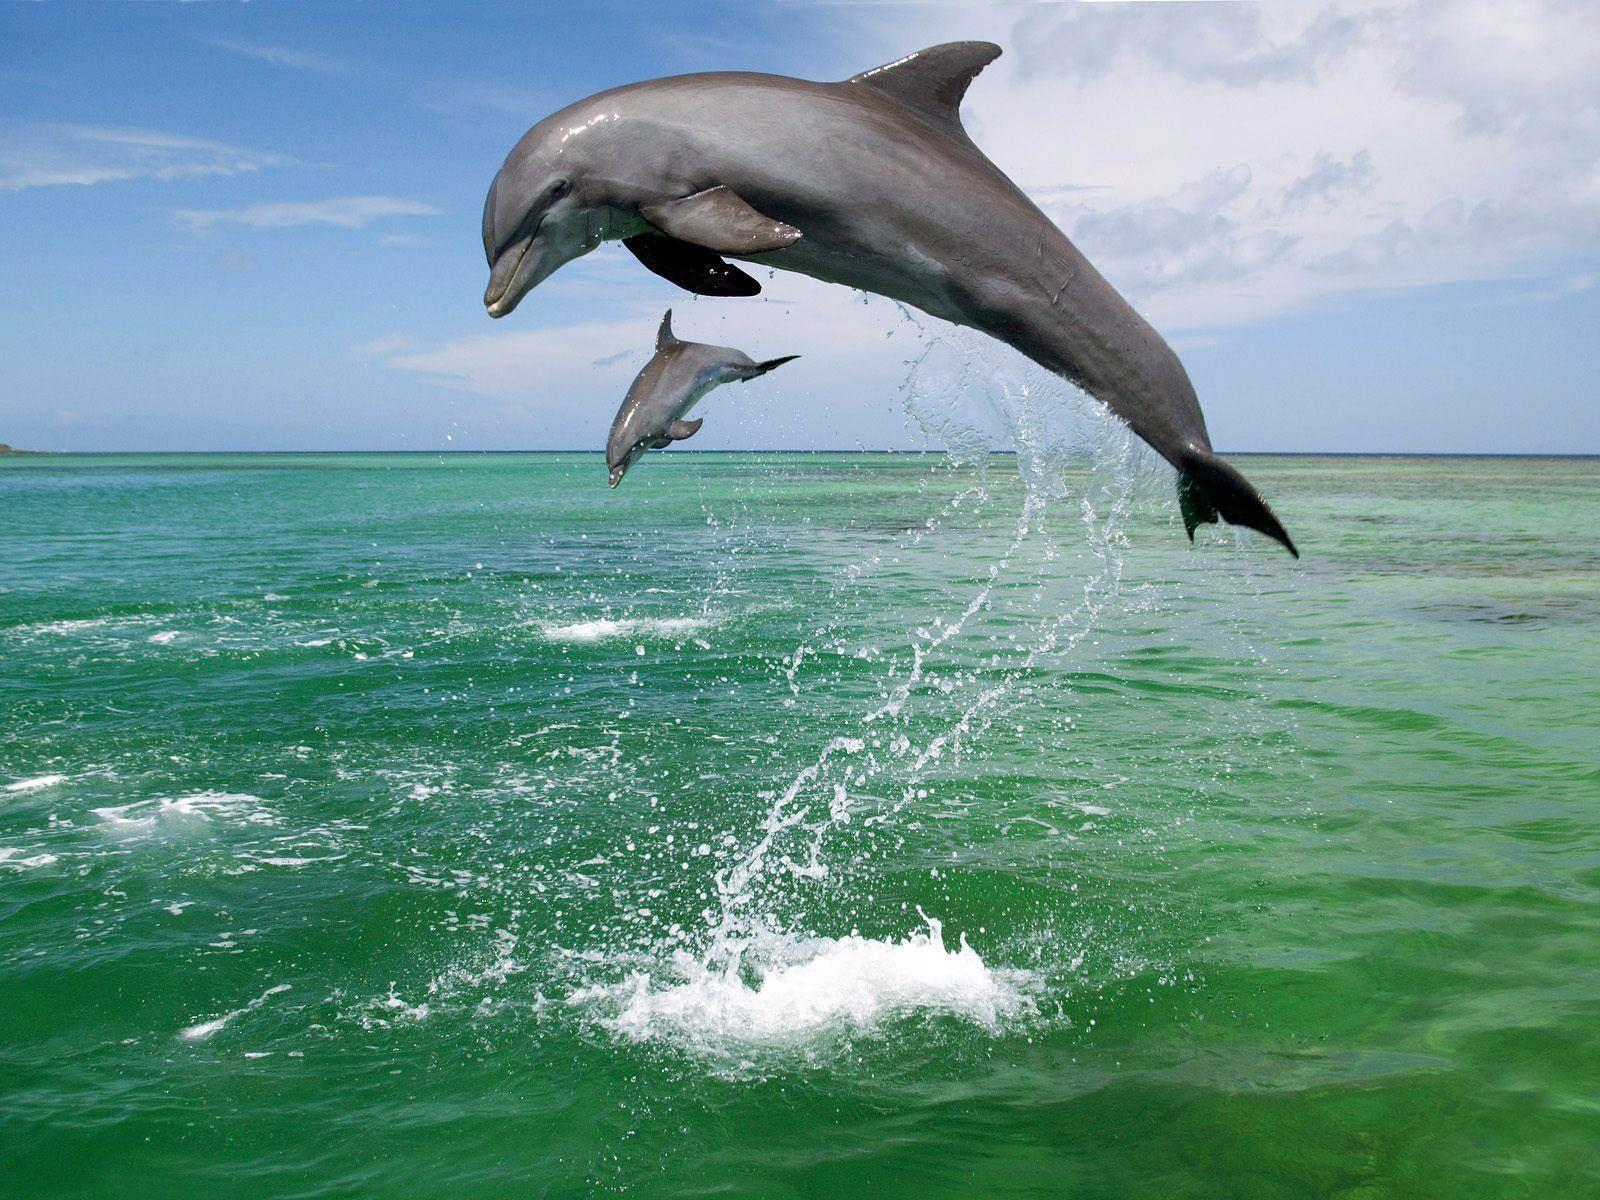 Bottlenose Dolphins :  1. Bottlenose Dolphins can live up to 40 - 50 years. The can grow to up to 12 ft long.  2. They must swim to the surface to breathe, which means that they never fully sleep. One side of a dolphin's brain must remain active for them at all times.  3. Bottlenose have a 360 degree field of vision. They can move each eye independently of the other.  4. They can dive up to 3000ft and spend 7 minutes underwater.  5. Each dolphin has a signature whistle used to identify themselves. When lost or isolated they use their signature whistle to call out to the group.